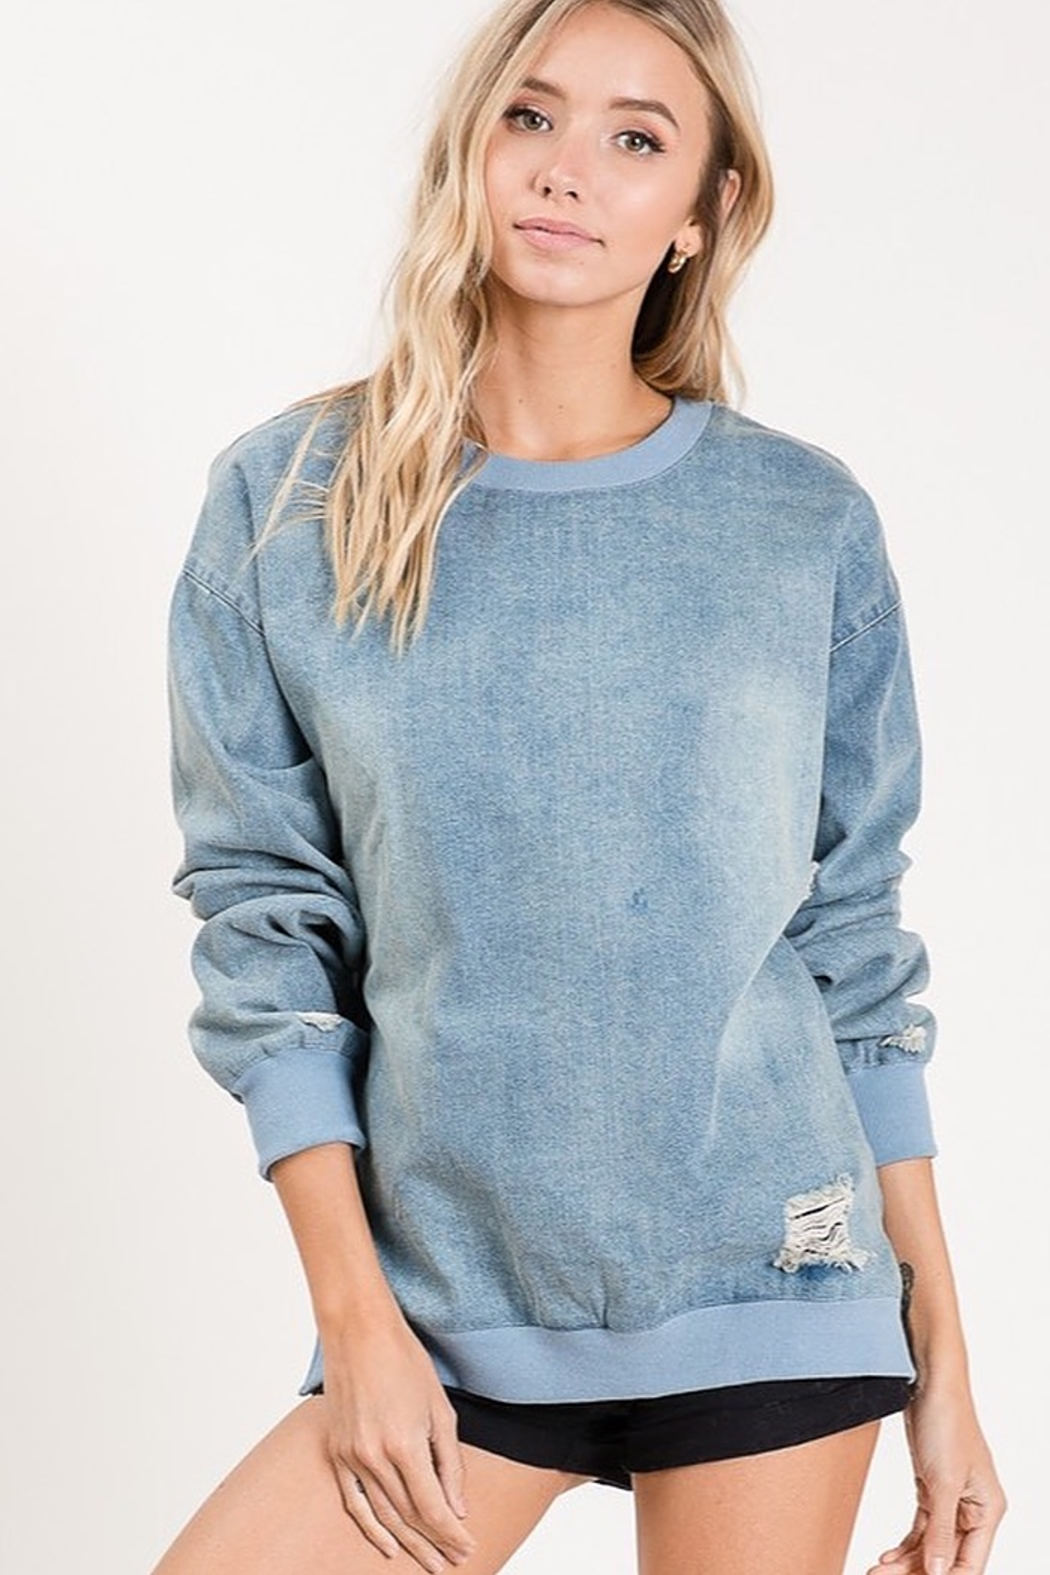 Macaron VINTAGE LOOKING DENIM PULL OVER TOP - Main Image